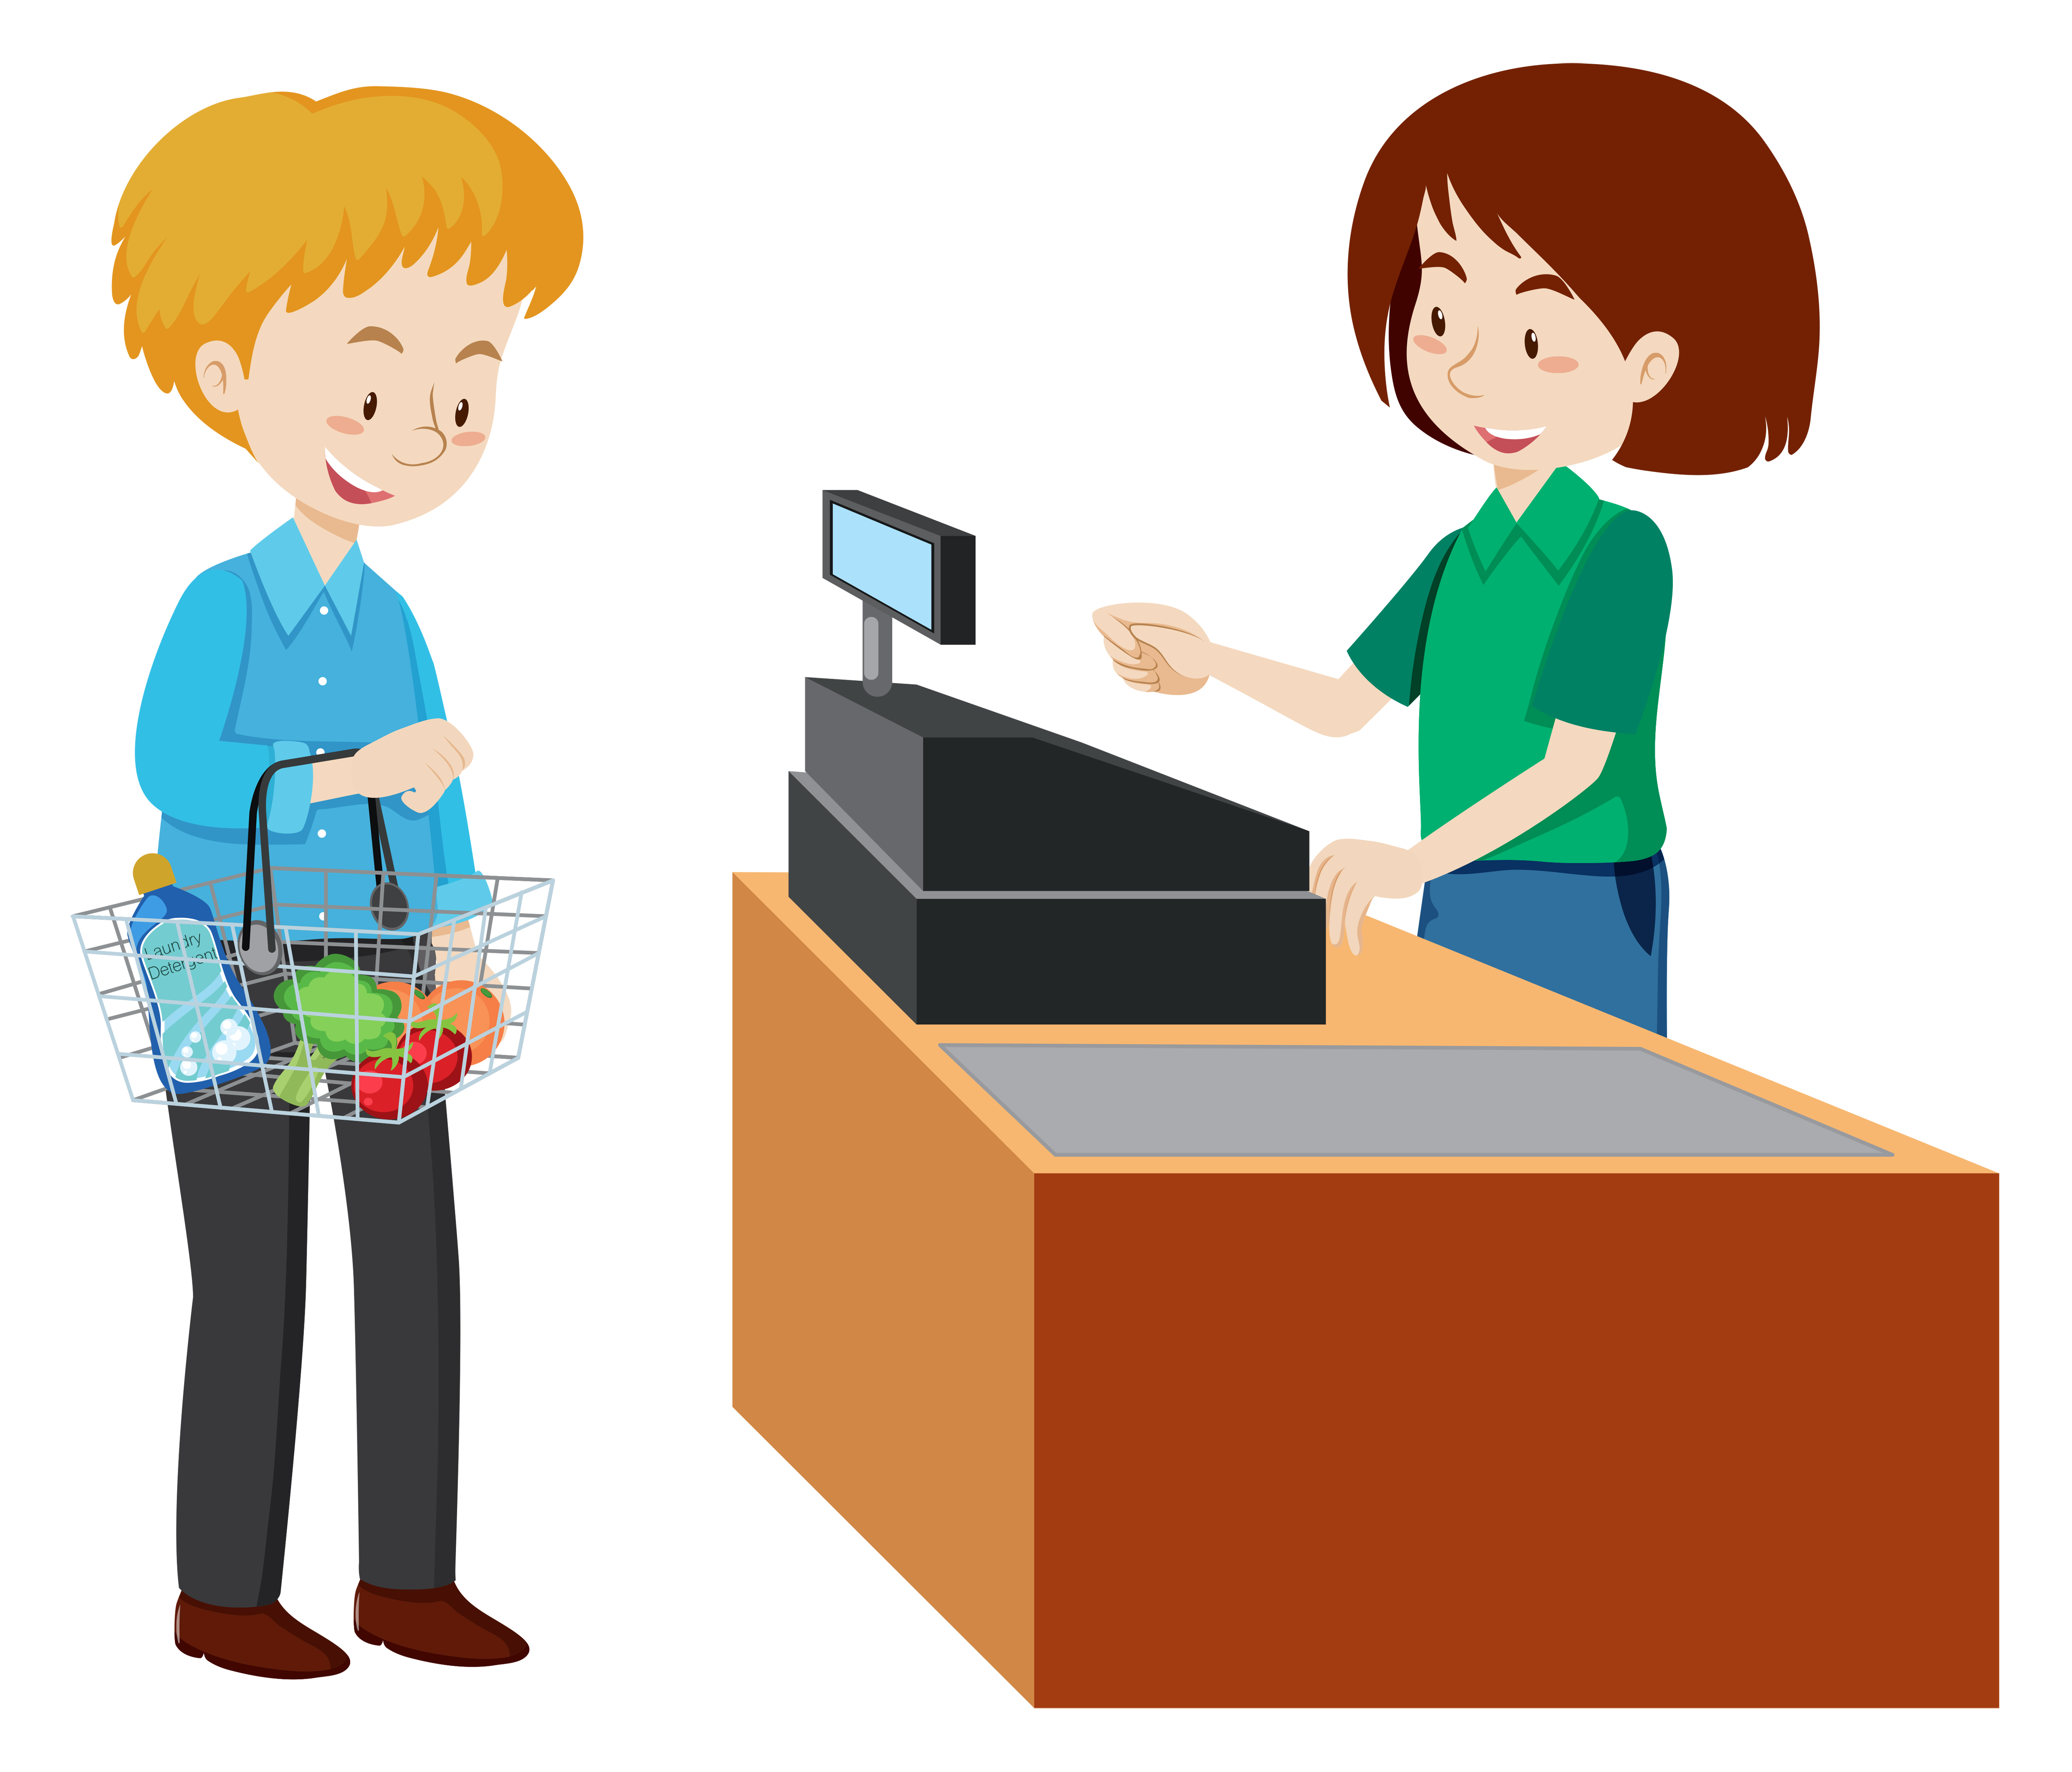 Cashier Cartoons: A Man Paying At The Cashier Of A Supermarket